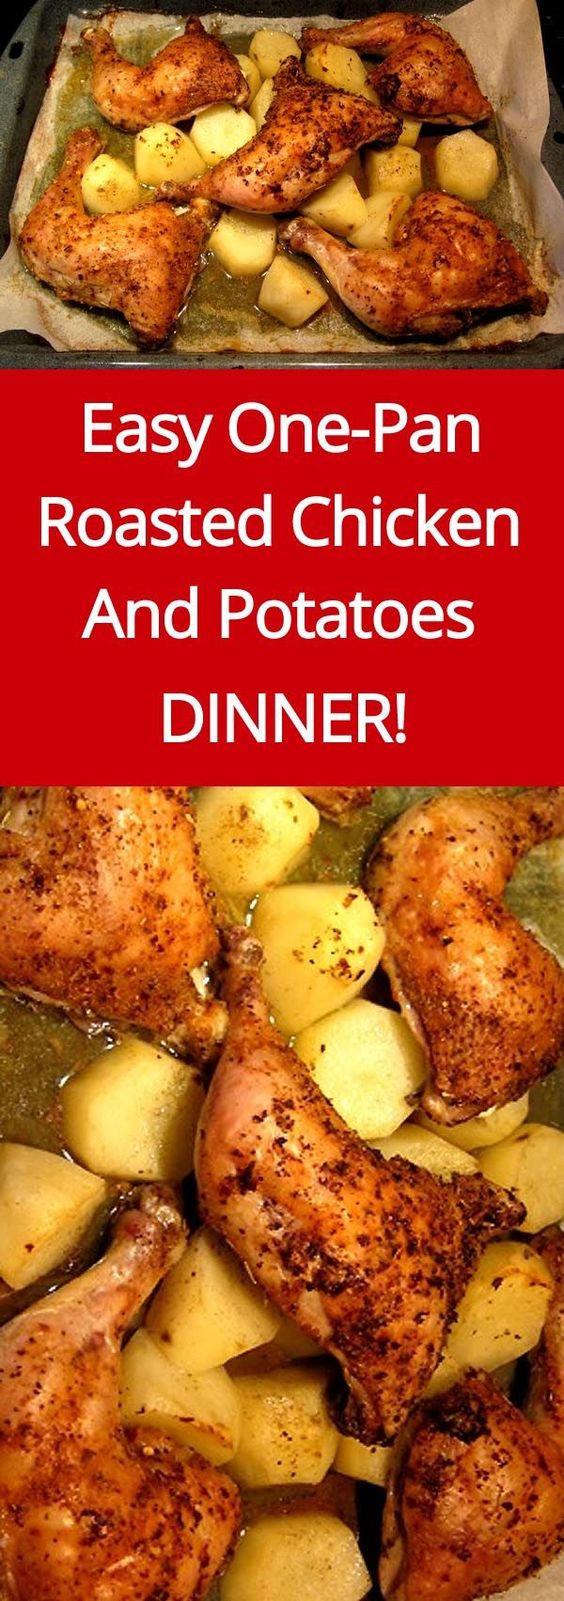 Pan Roasted Chicken And Potatoes Recipe Roasted Chicken And Potatoes Easy One-Pan Dinner Recipe